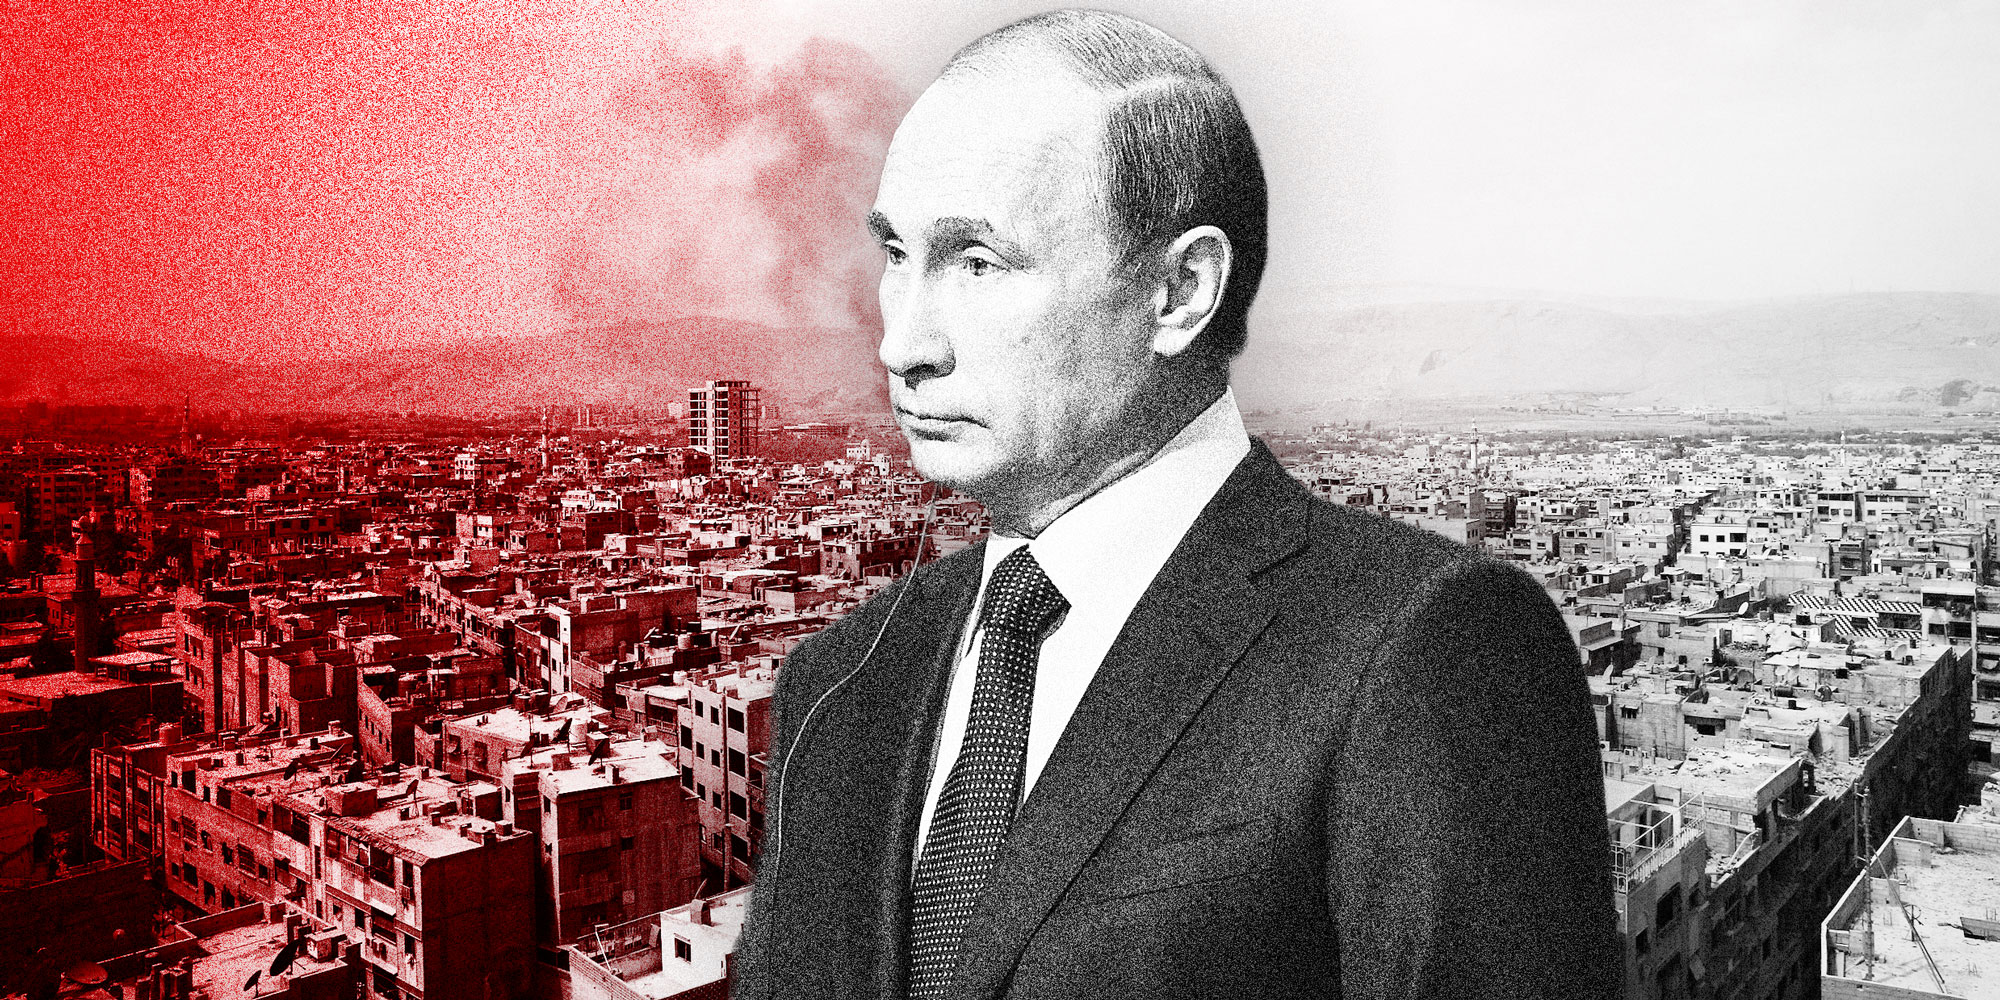 Does Putin have a plan for Syria? - GEOPOLITICA.info